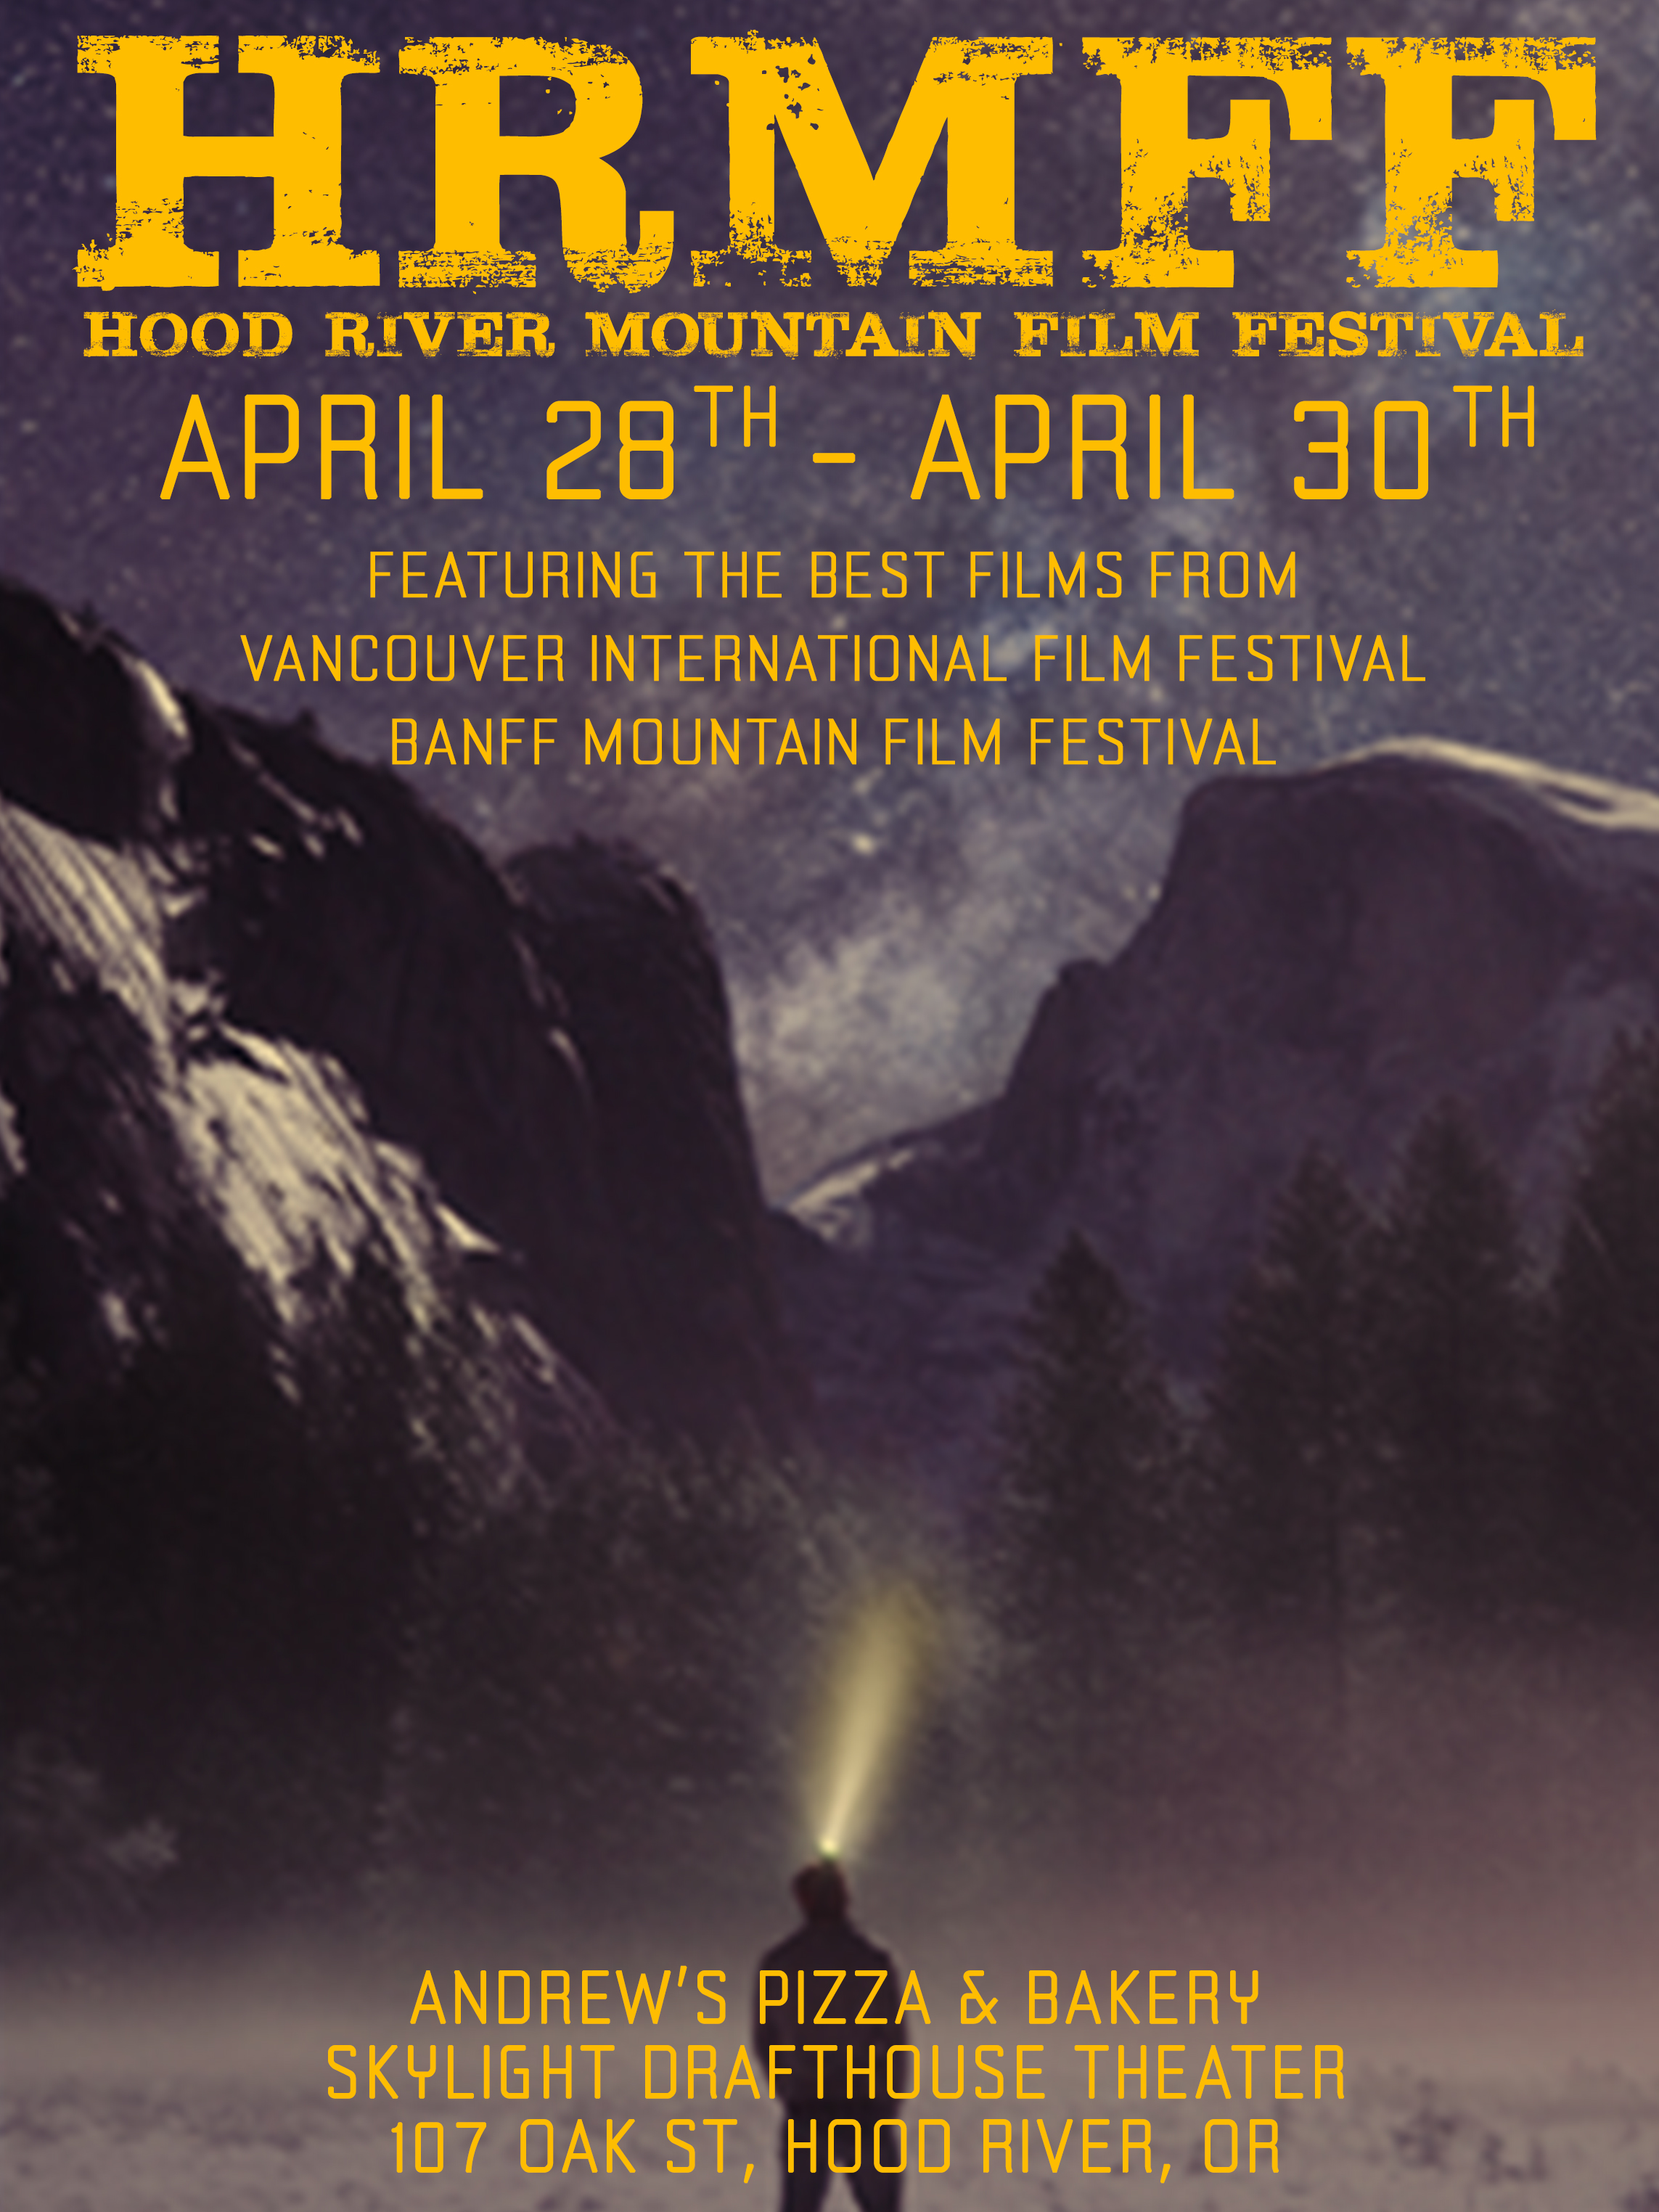 HOOD RIVER MOUNTAIN FILM FESTIVAL